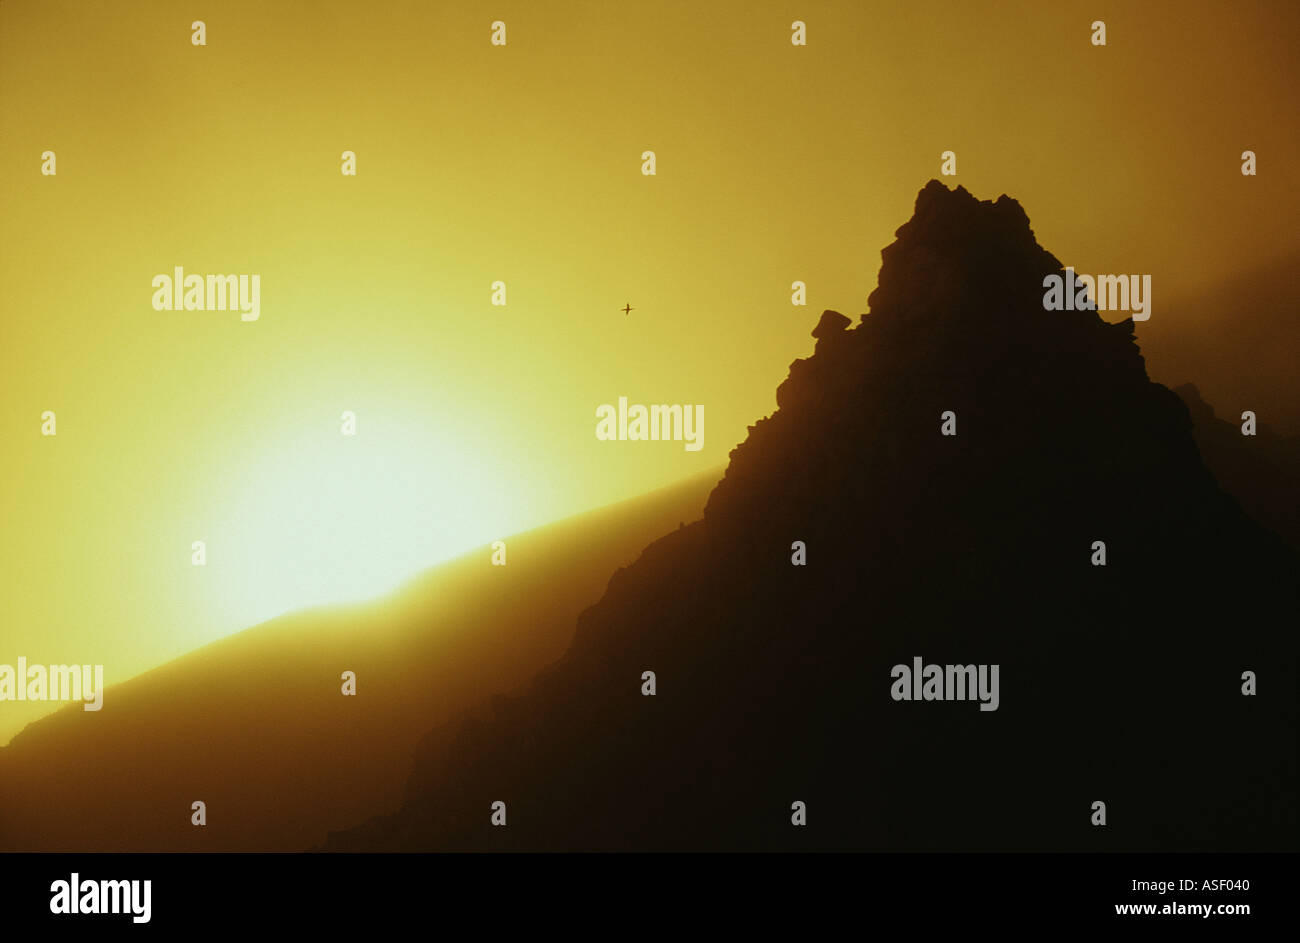 Gannet in distance flying through hazy sunset caused by steam and ash from active volcano White Island New Zealand - Stock Image